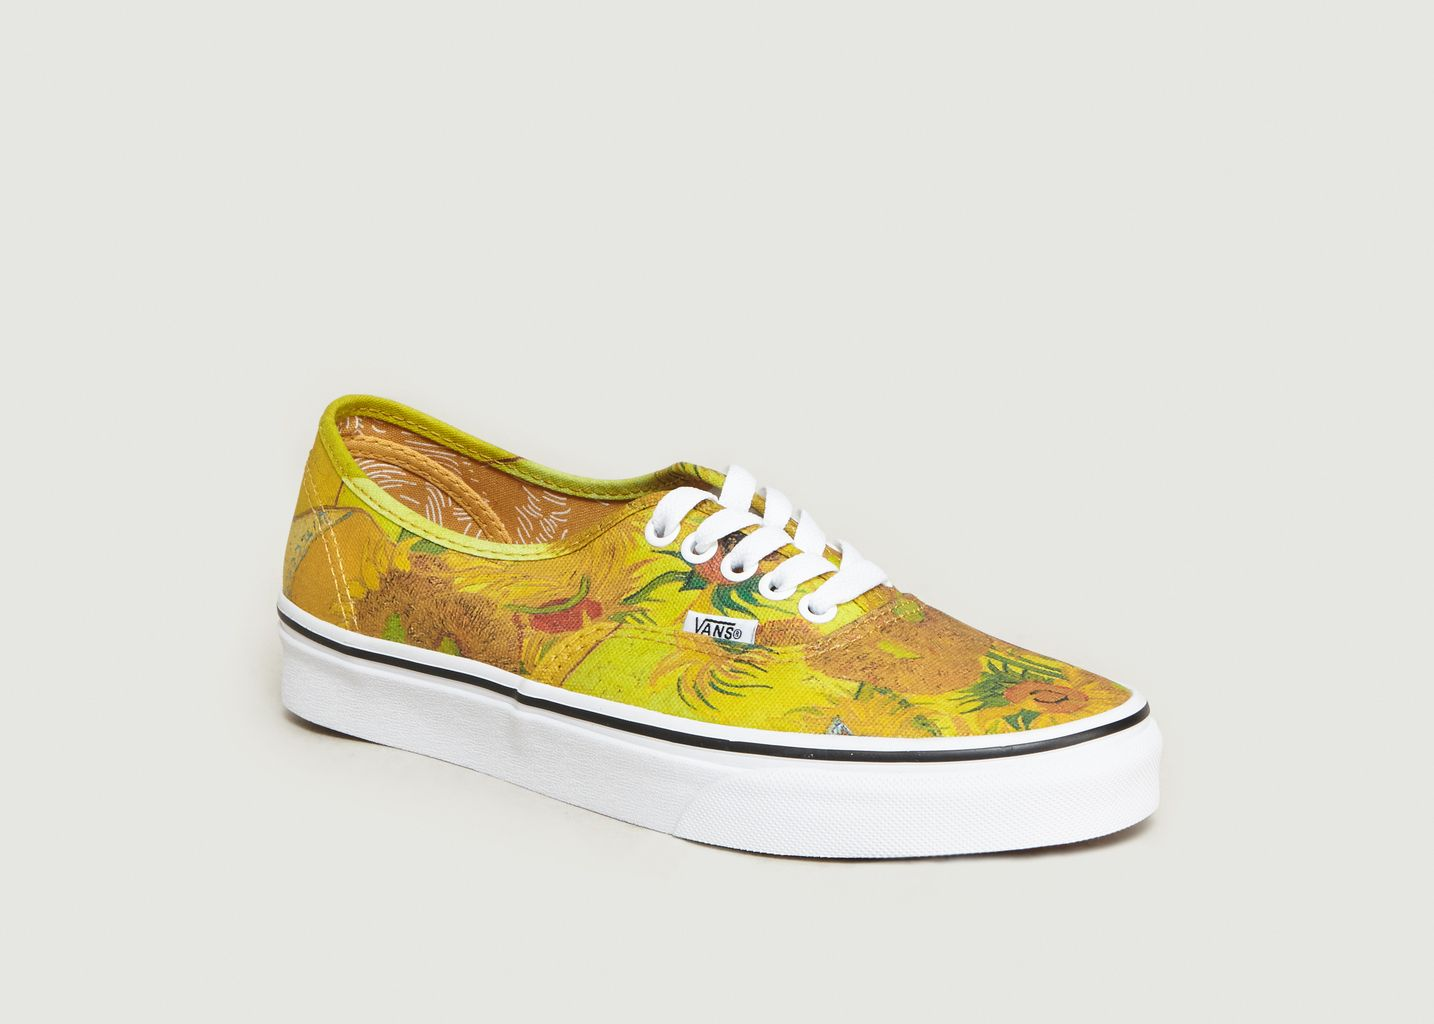 c8a34ab13304 Authentic x Van Gogh Skate Shoes Yellow Vans